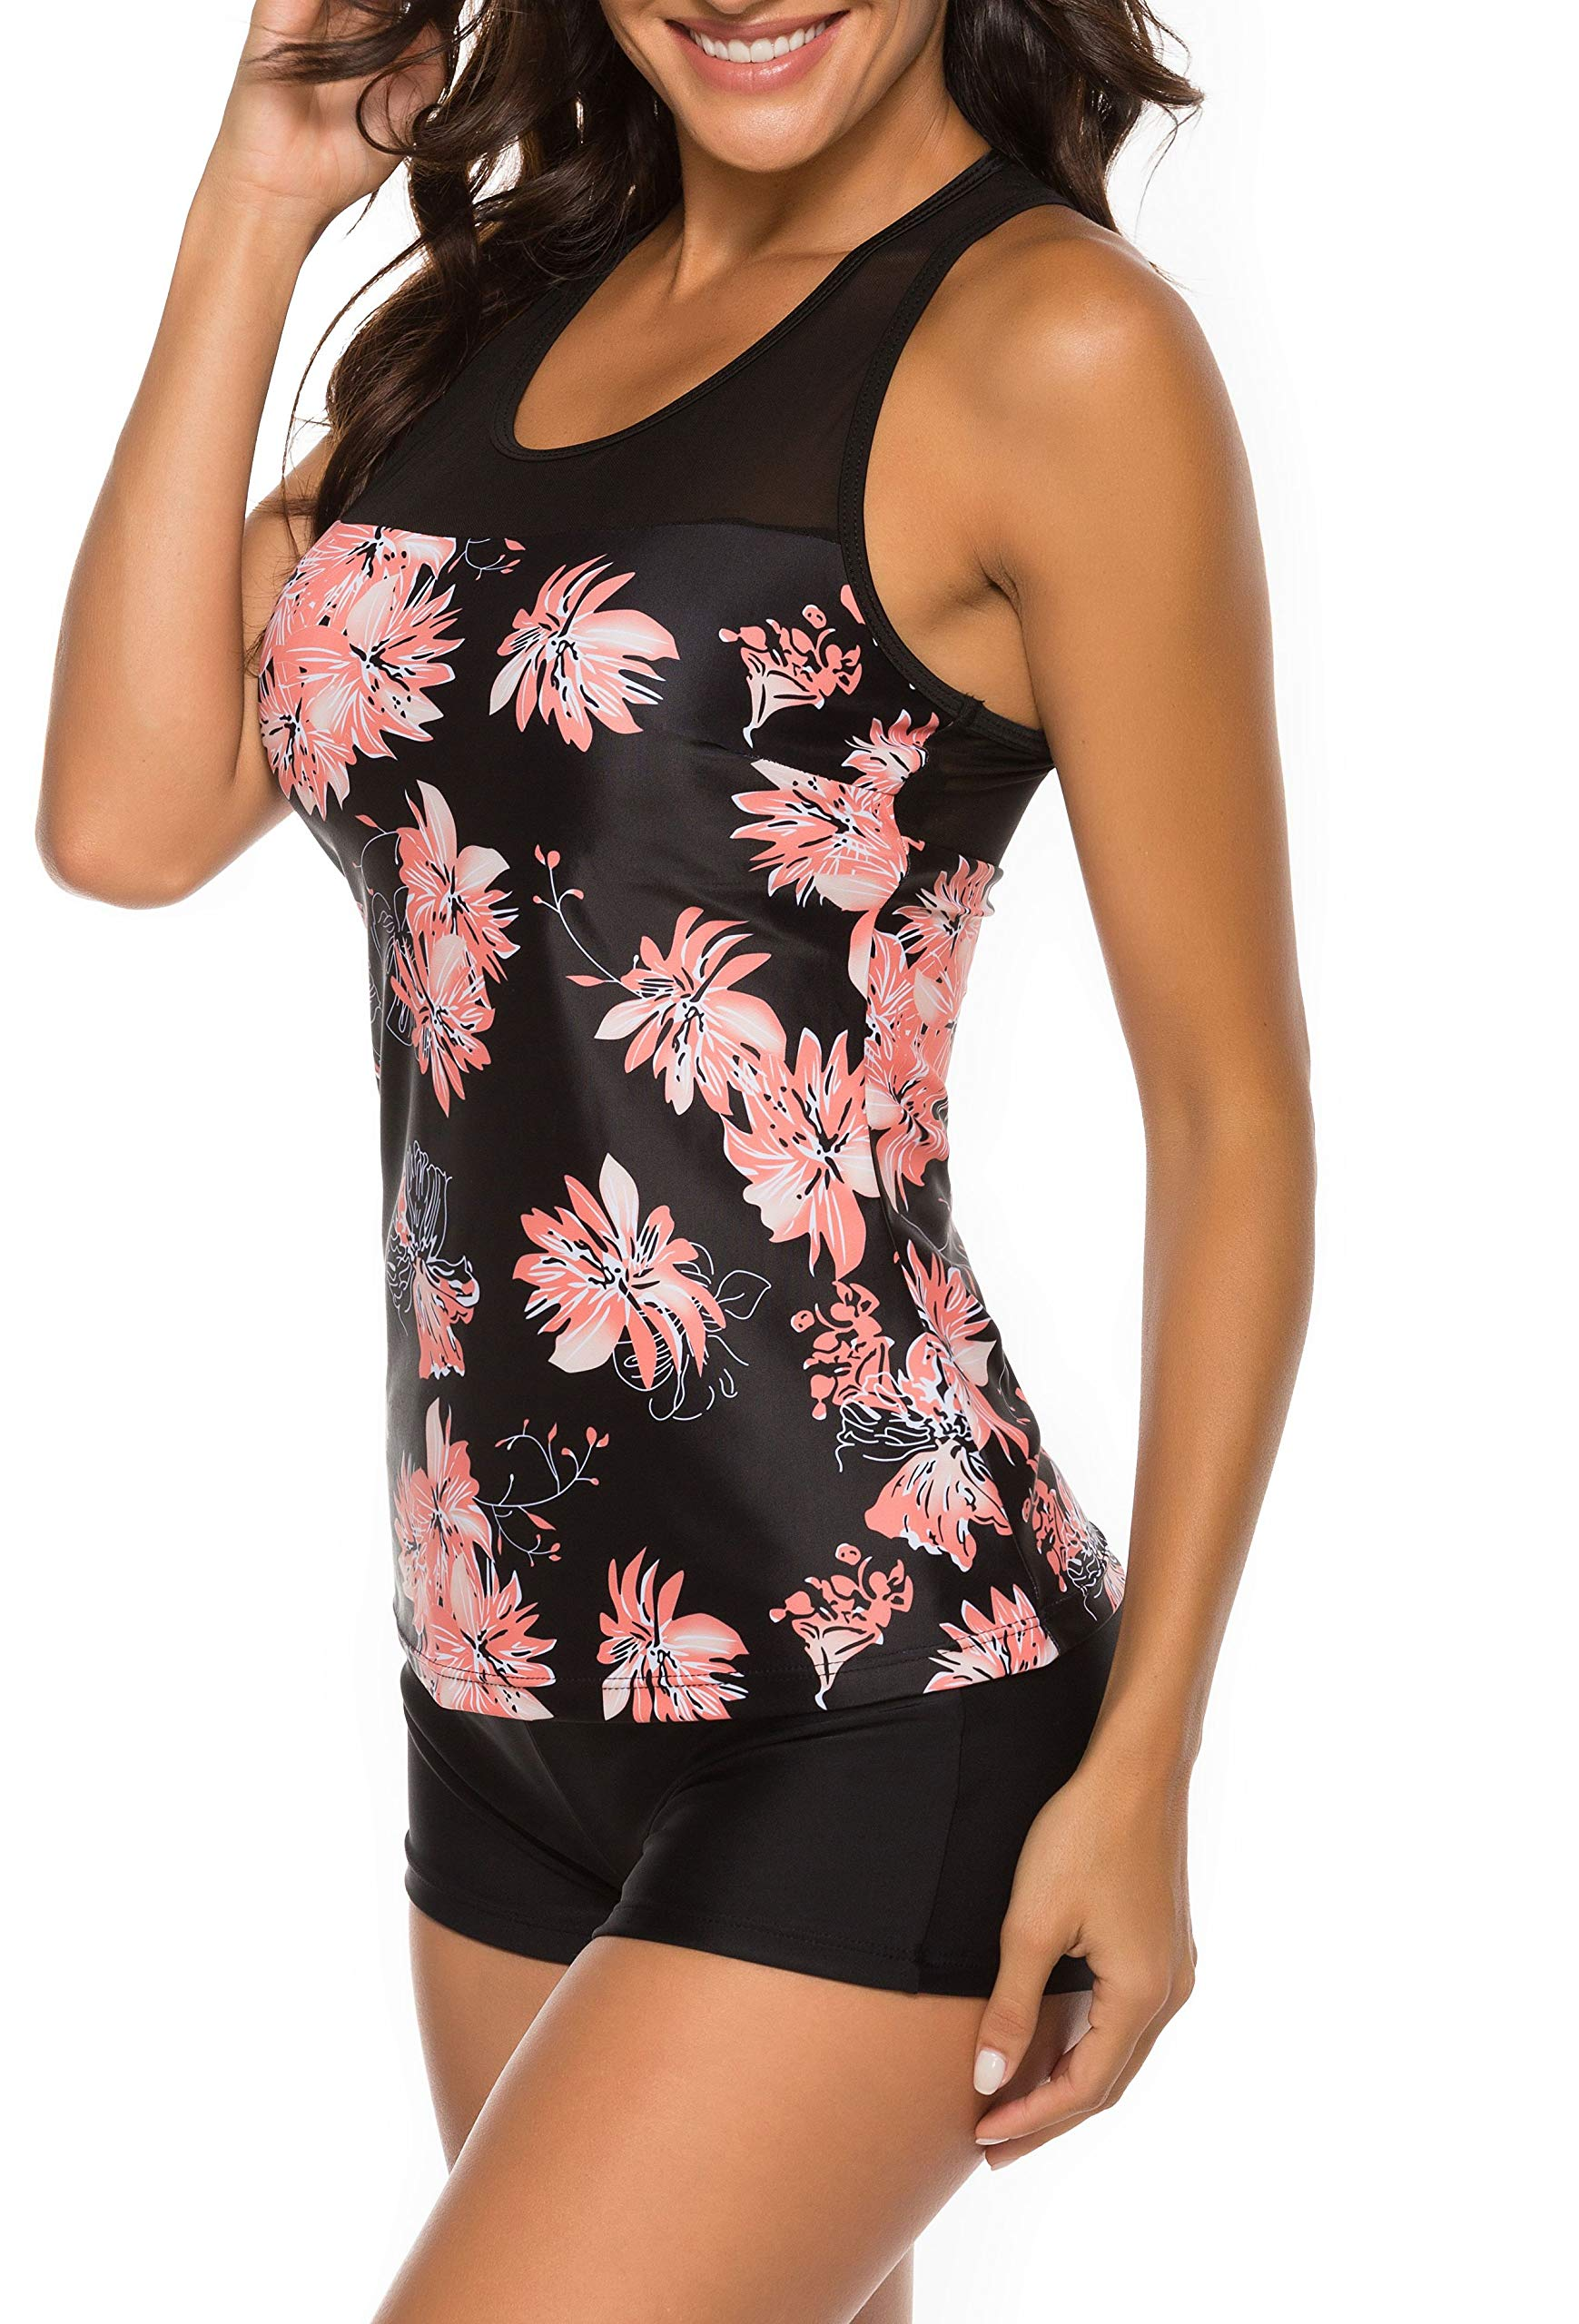 Willingyo Two Pieces Swimsuits for Women Racerback Tankini Bathing Suits with Boyshort Floral Print M